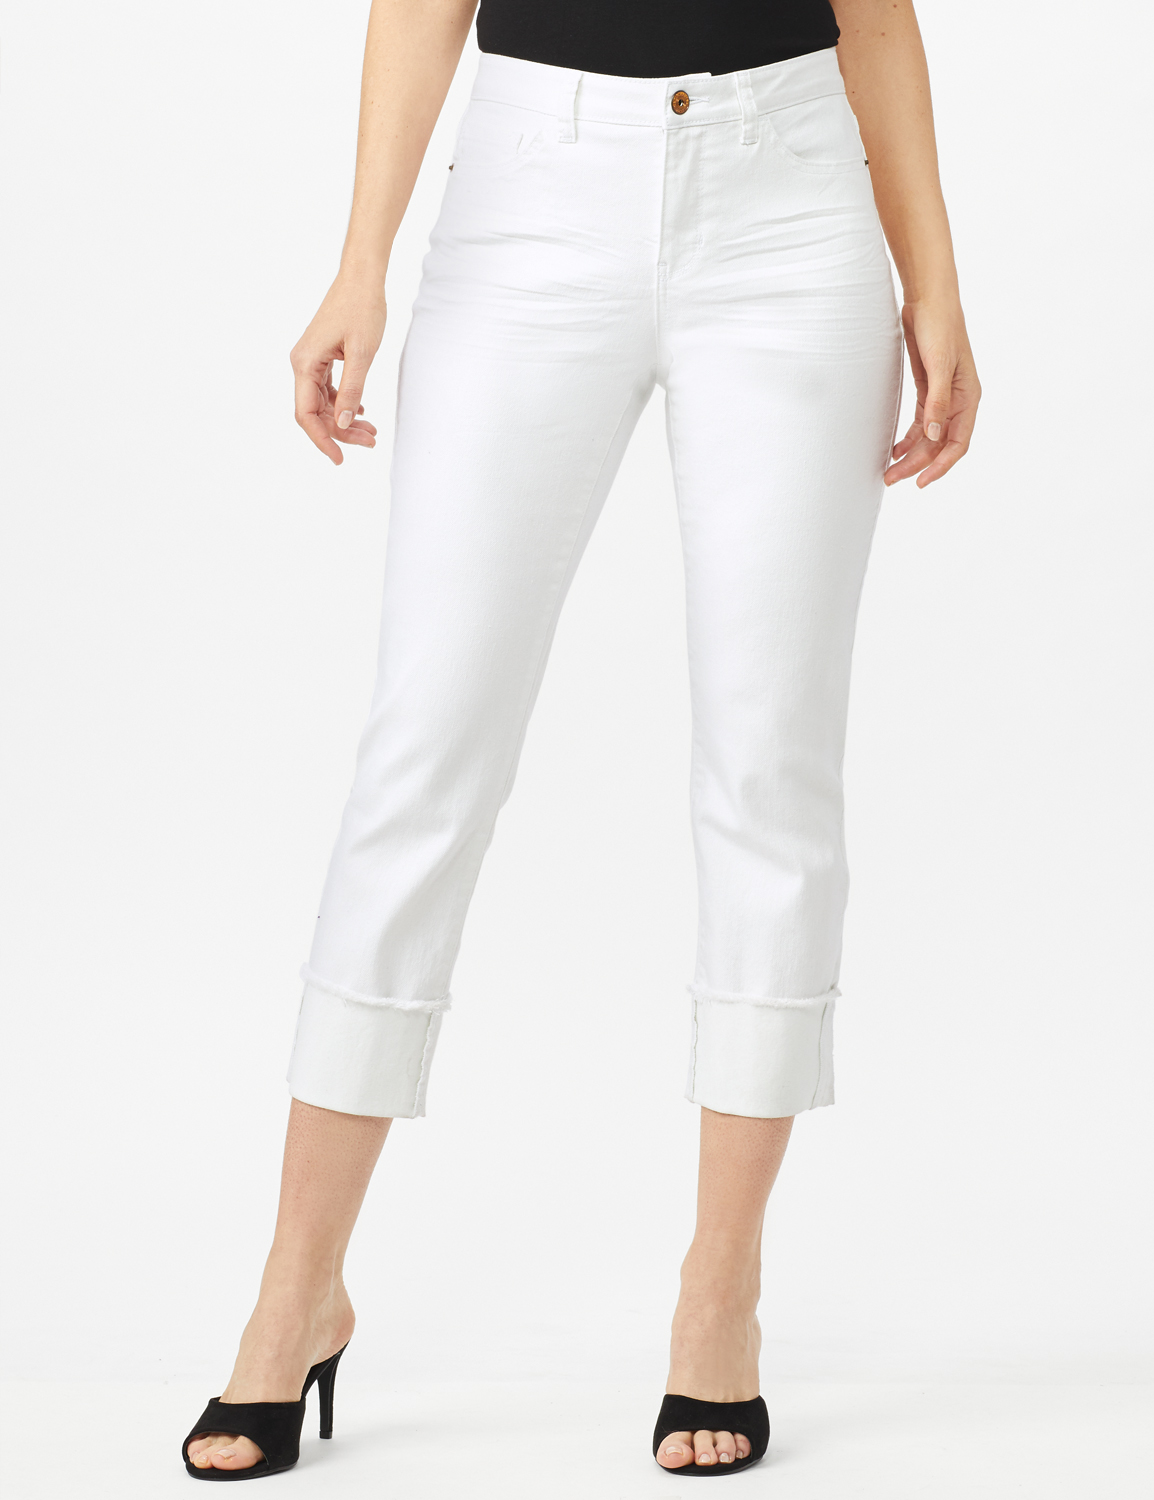 Authentic Stretch Straight Leg Denim Pants with High Fray Cuff -White - Front